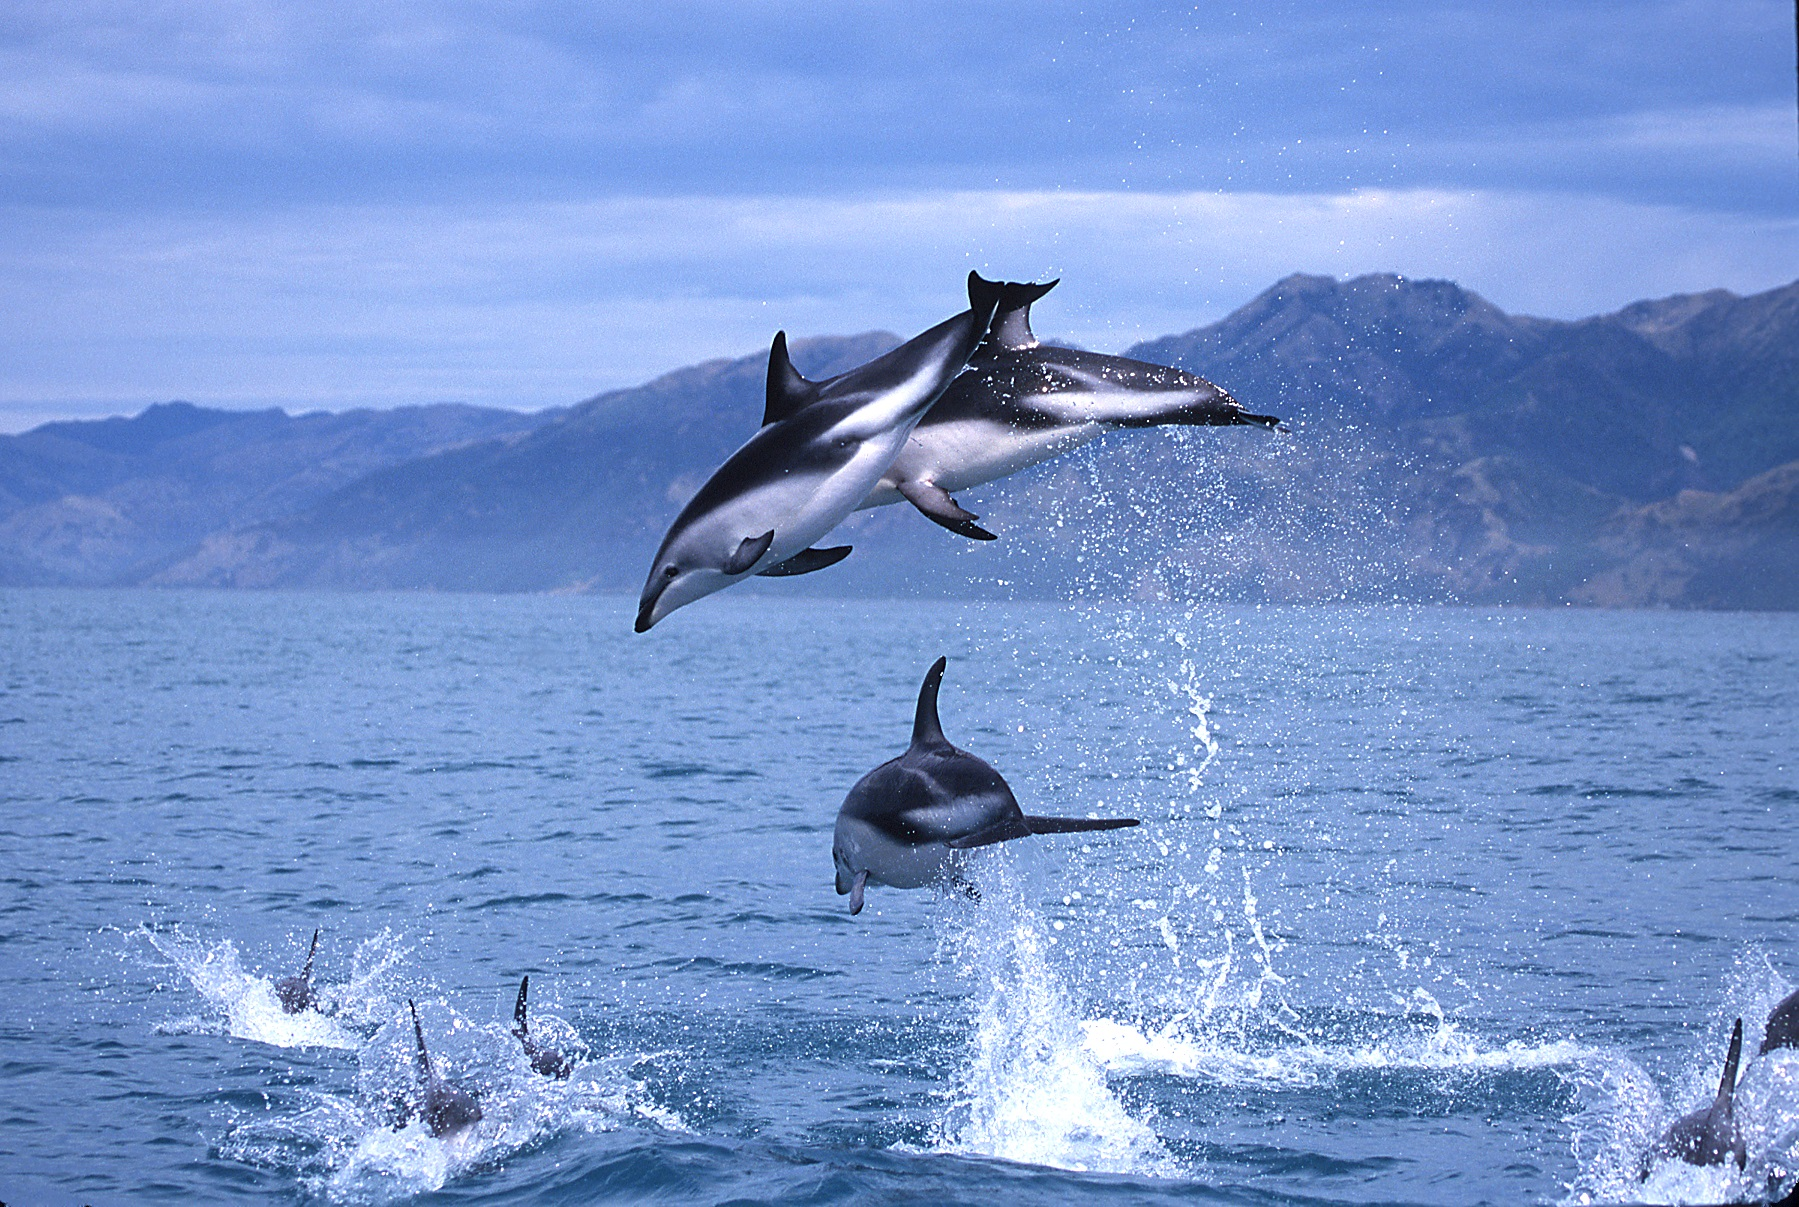 whale watch kaikoura Whale watch® kaikoura is new zealand's ultimate all year round nature experience offering visitors exciting close encounters with giant sperm whales an impressive 95% success rate means that you are guaranteed an 80% refund if your tour does not see a whale.